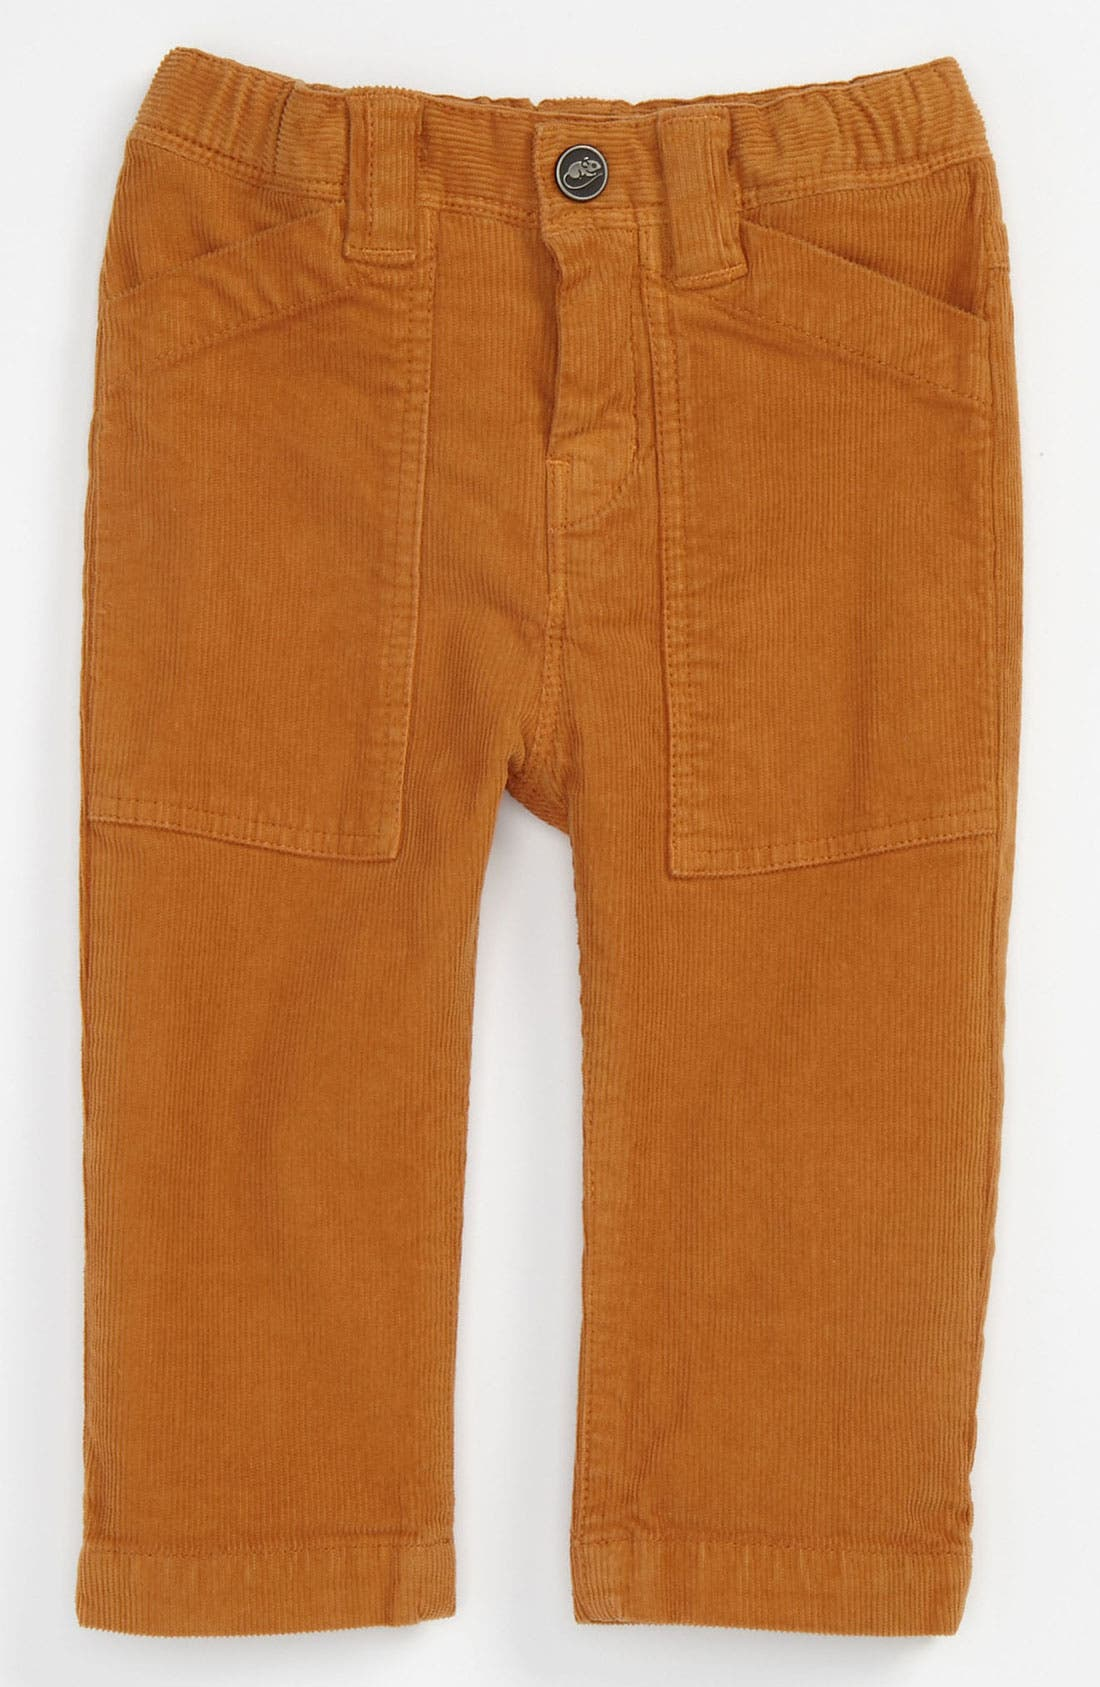 Alternate Image 1 Selected - LITTLE MARC JACOBS Stretch Corduroy Pants (Toddler)